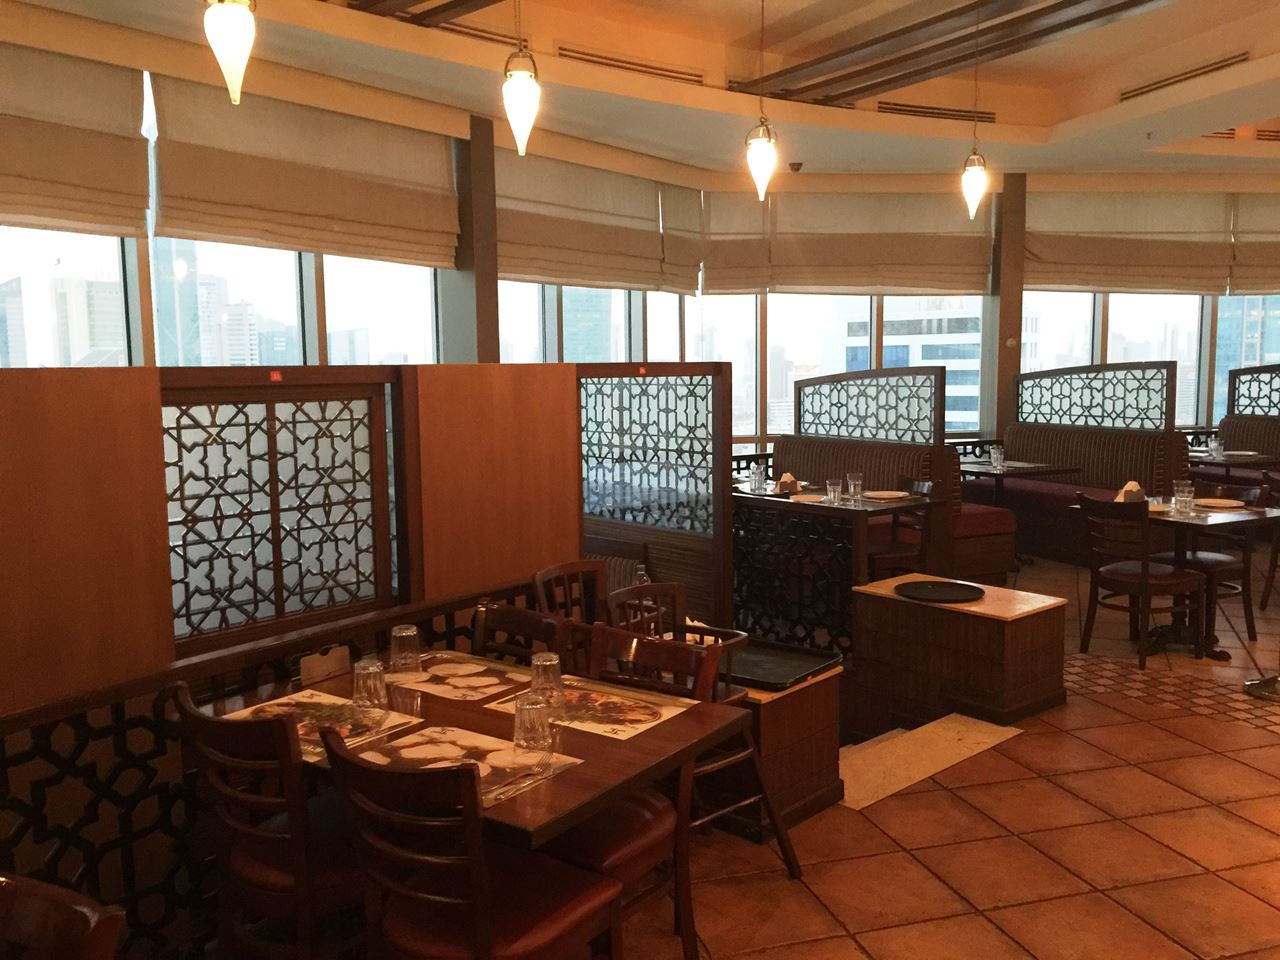 A section in Al Balad restaurant